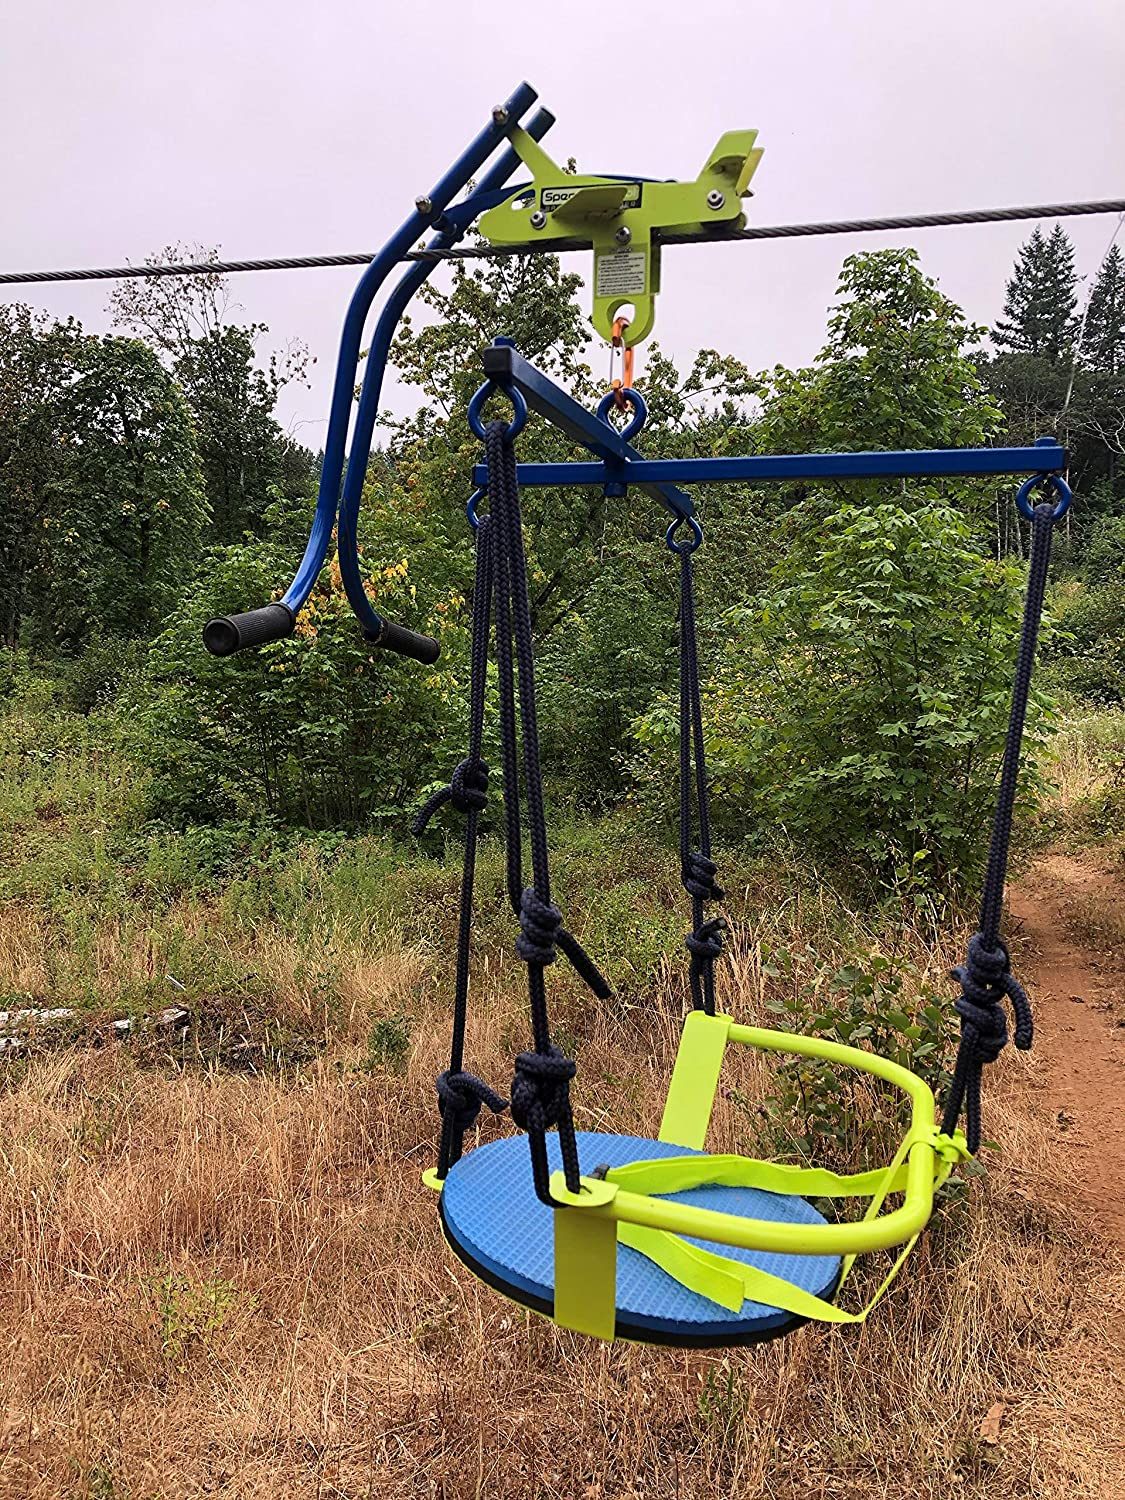 Amazon.com: Zip line Trolley with Brake - Featuring The ...